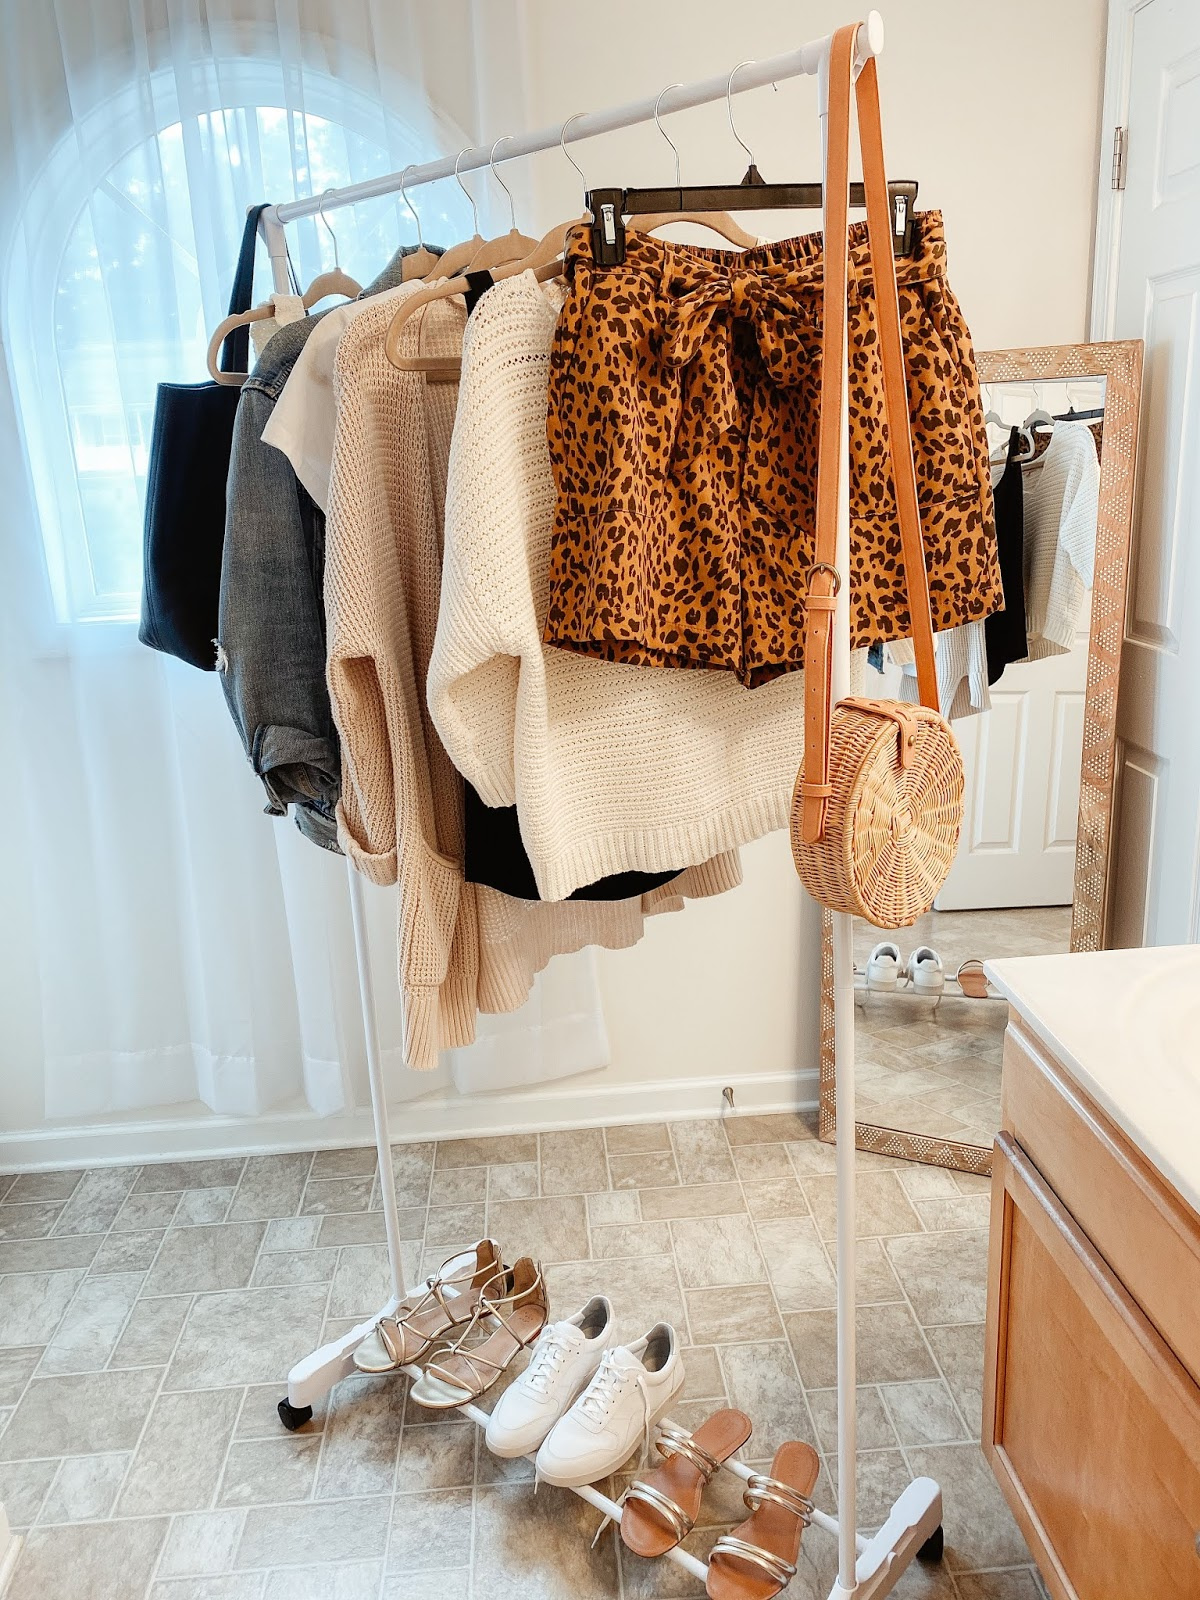 how to wear leopard shorts, how to style leopard shorts, target finds, target leopard shorts, nc blogger, north carolina blogger, style on a budget